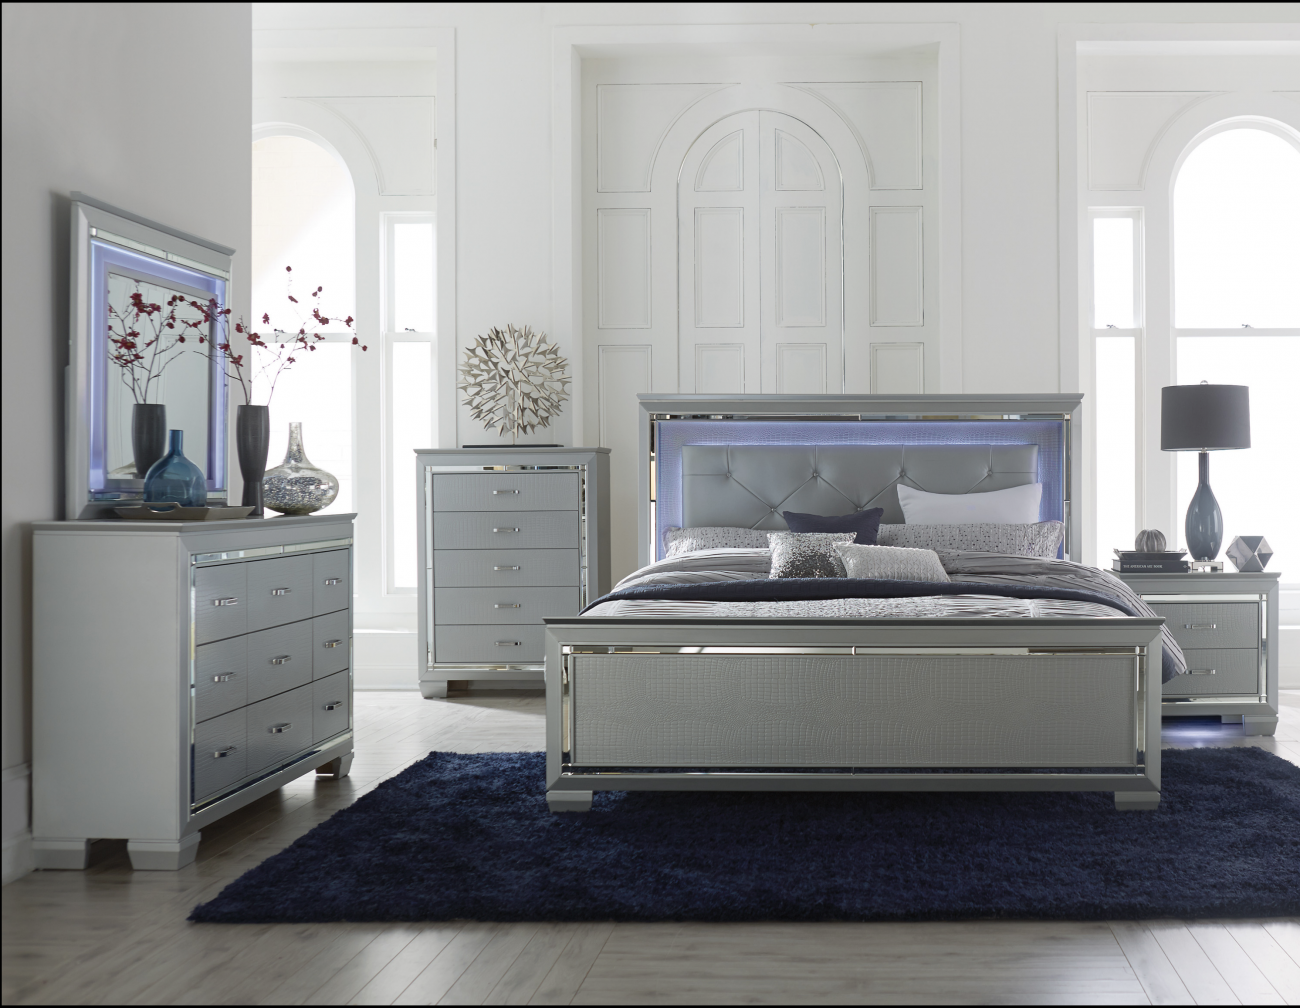 Bedroom Furniture and Design | The Show Place Furniture Galleries